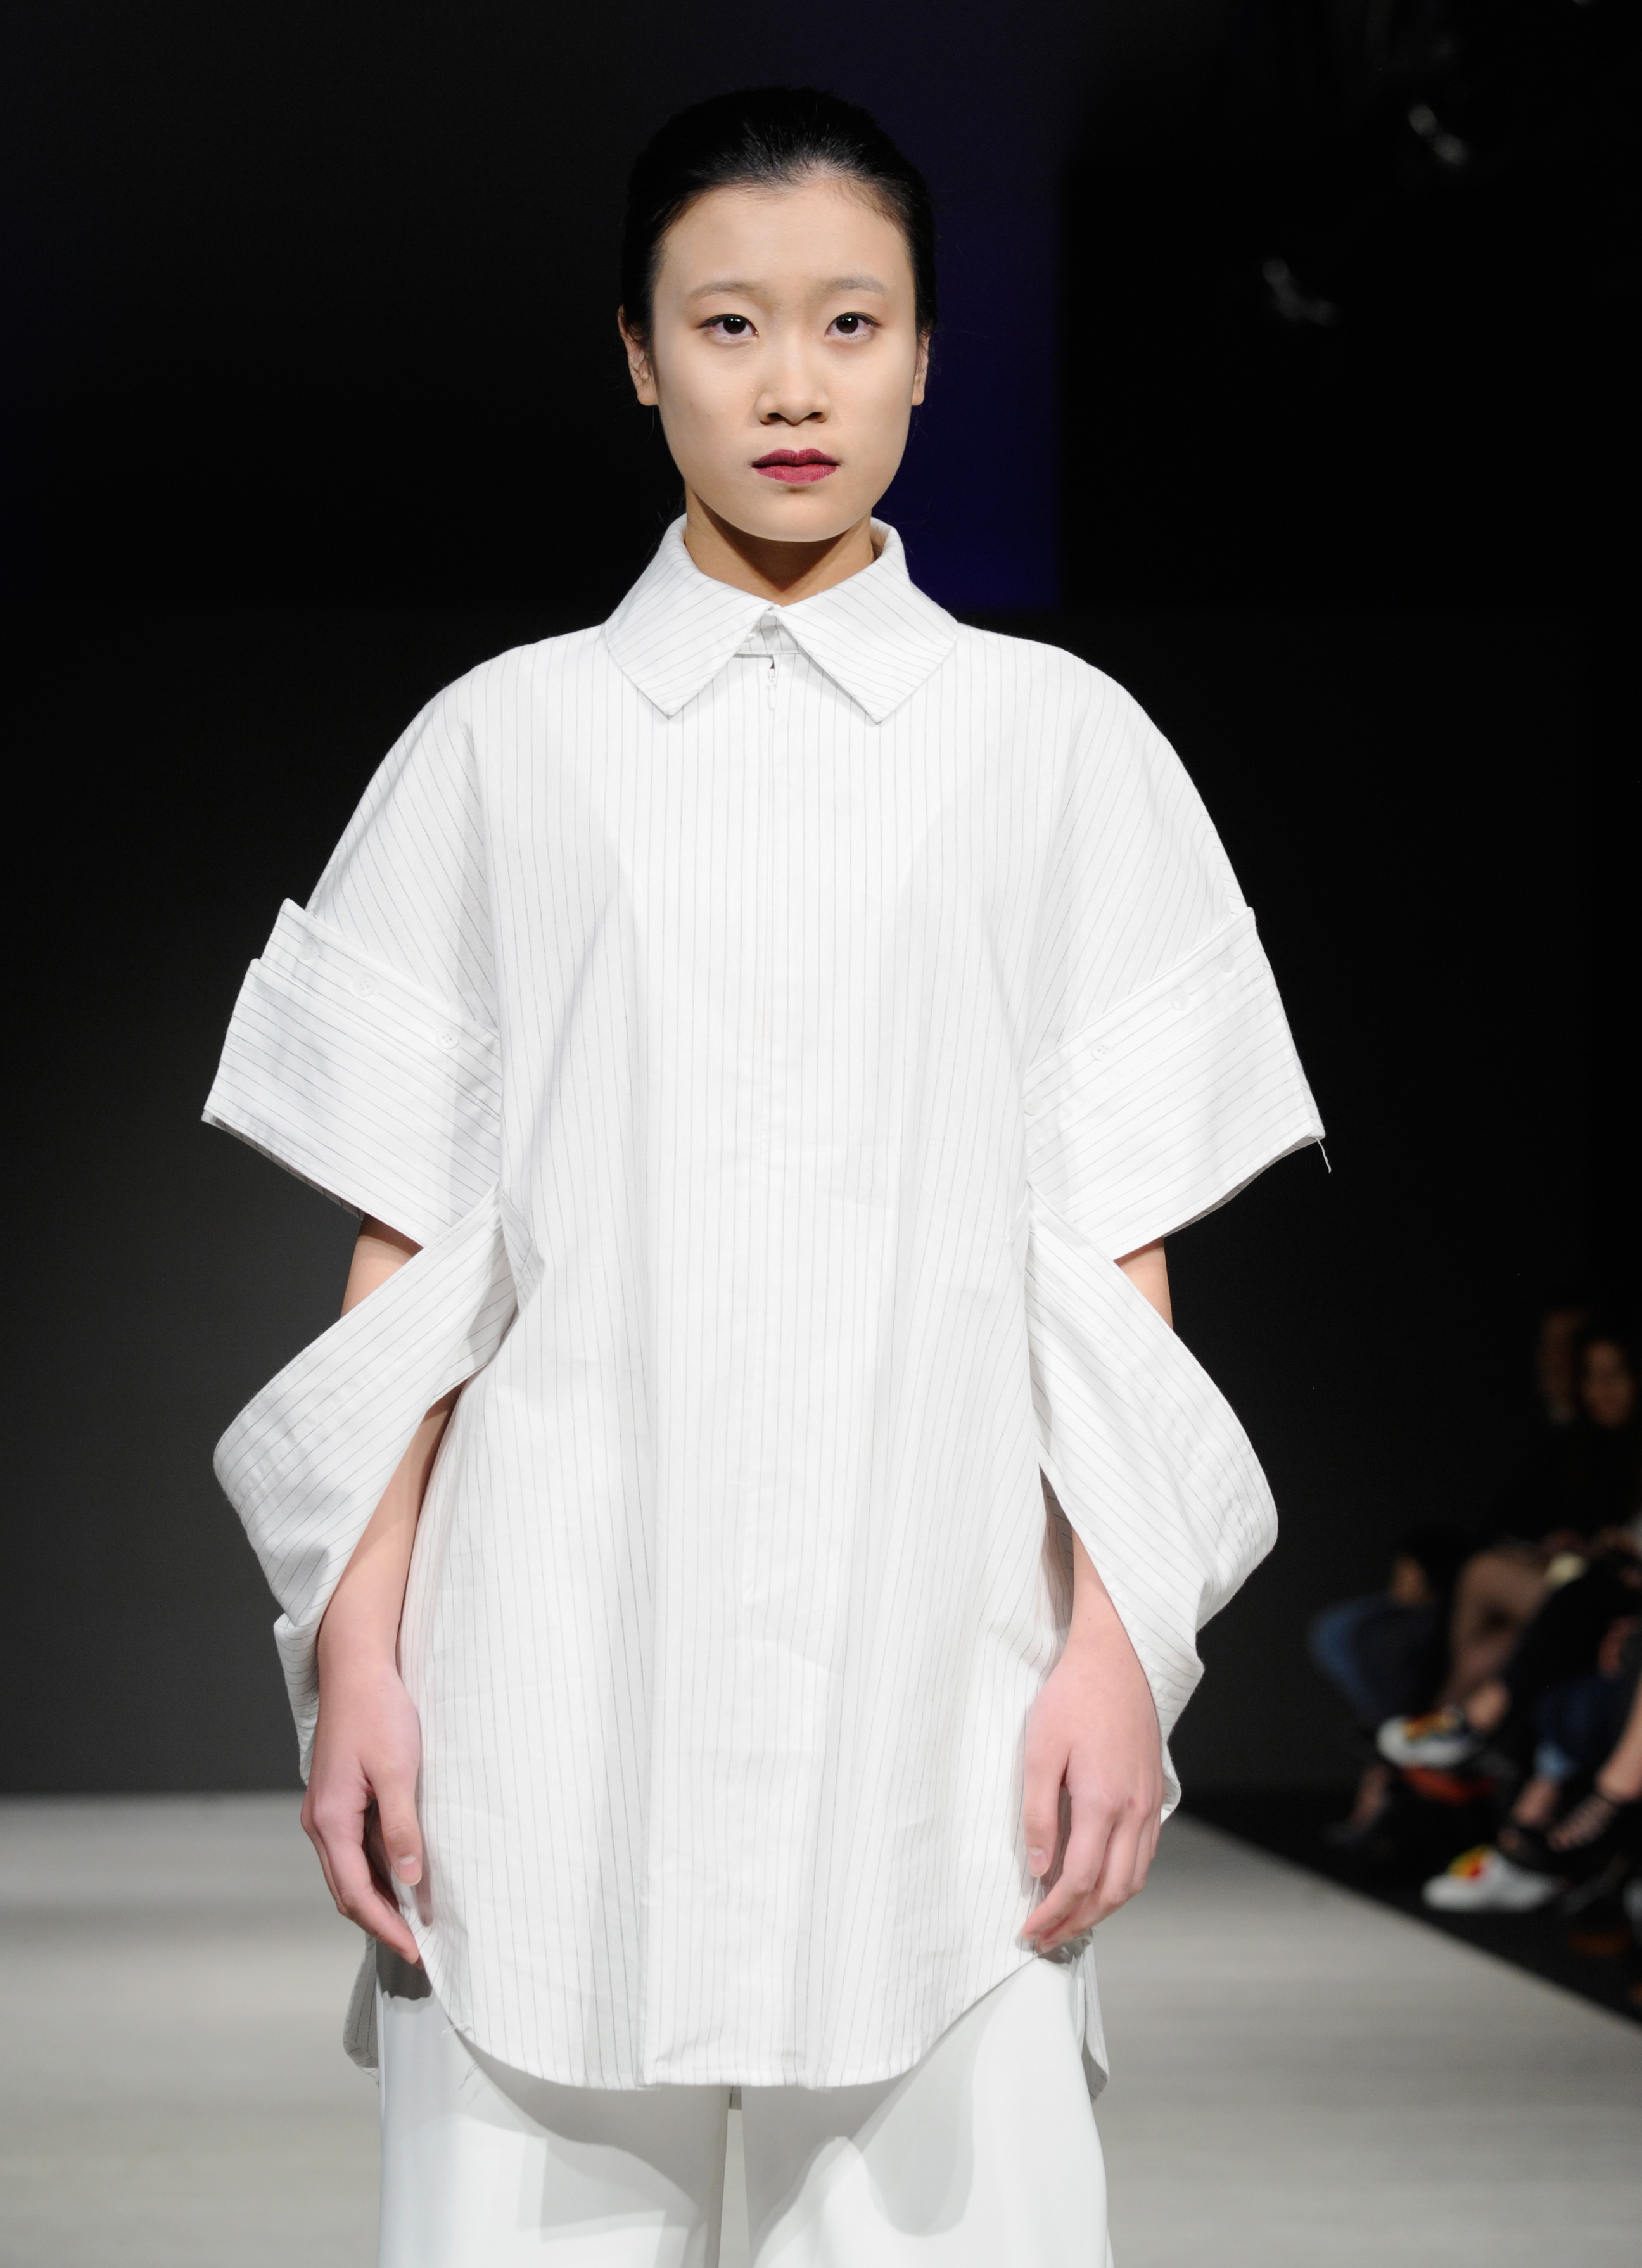 VANCOUVER, BC - MARCH 21:  A model walks the runway wearing Alogon at Vancouver Fashion Week Fall/Winter 2017  at Chinese Cultural Centre of Greater Vancouver on March 21, 2017 in Vancouver, Canada.  (Photo by Arun Nevader/WireImage)